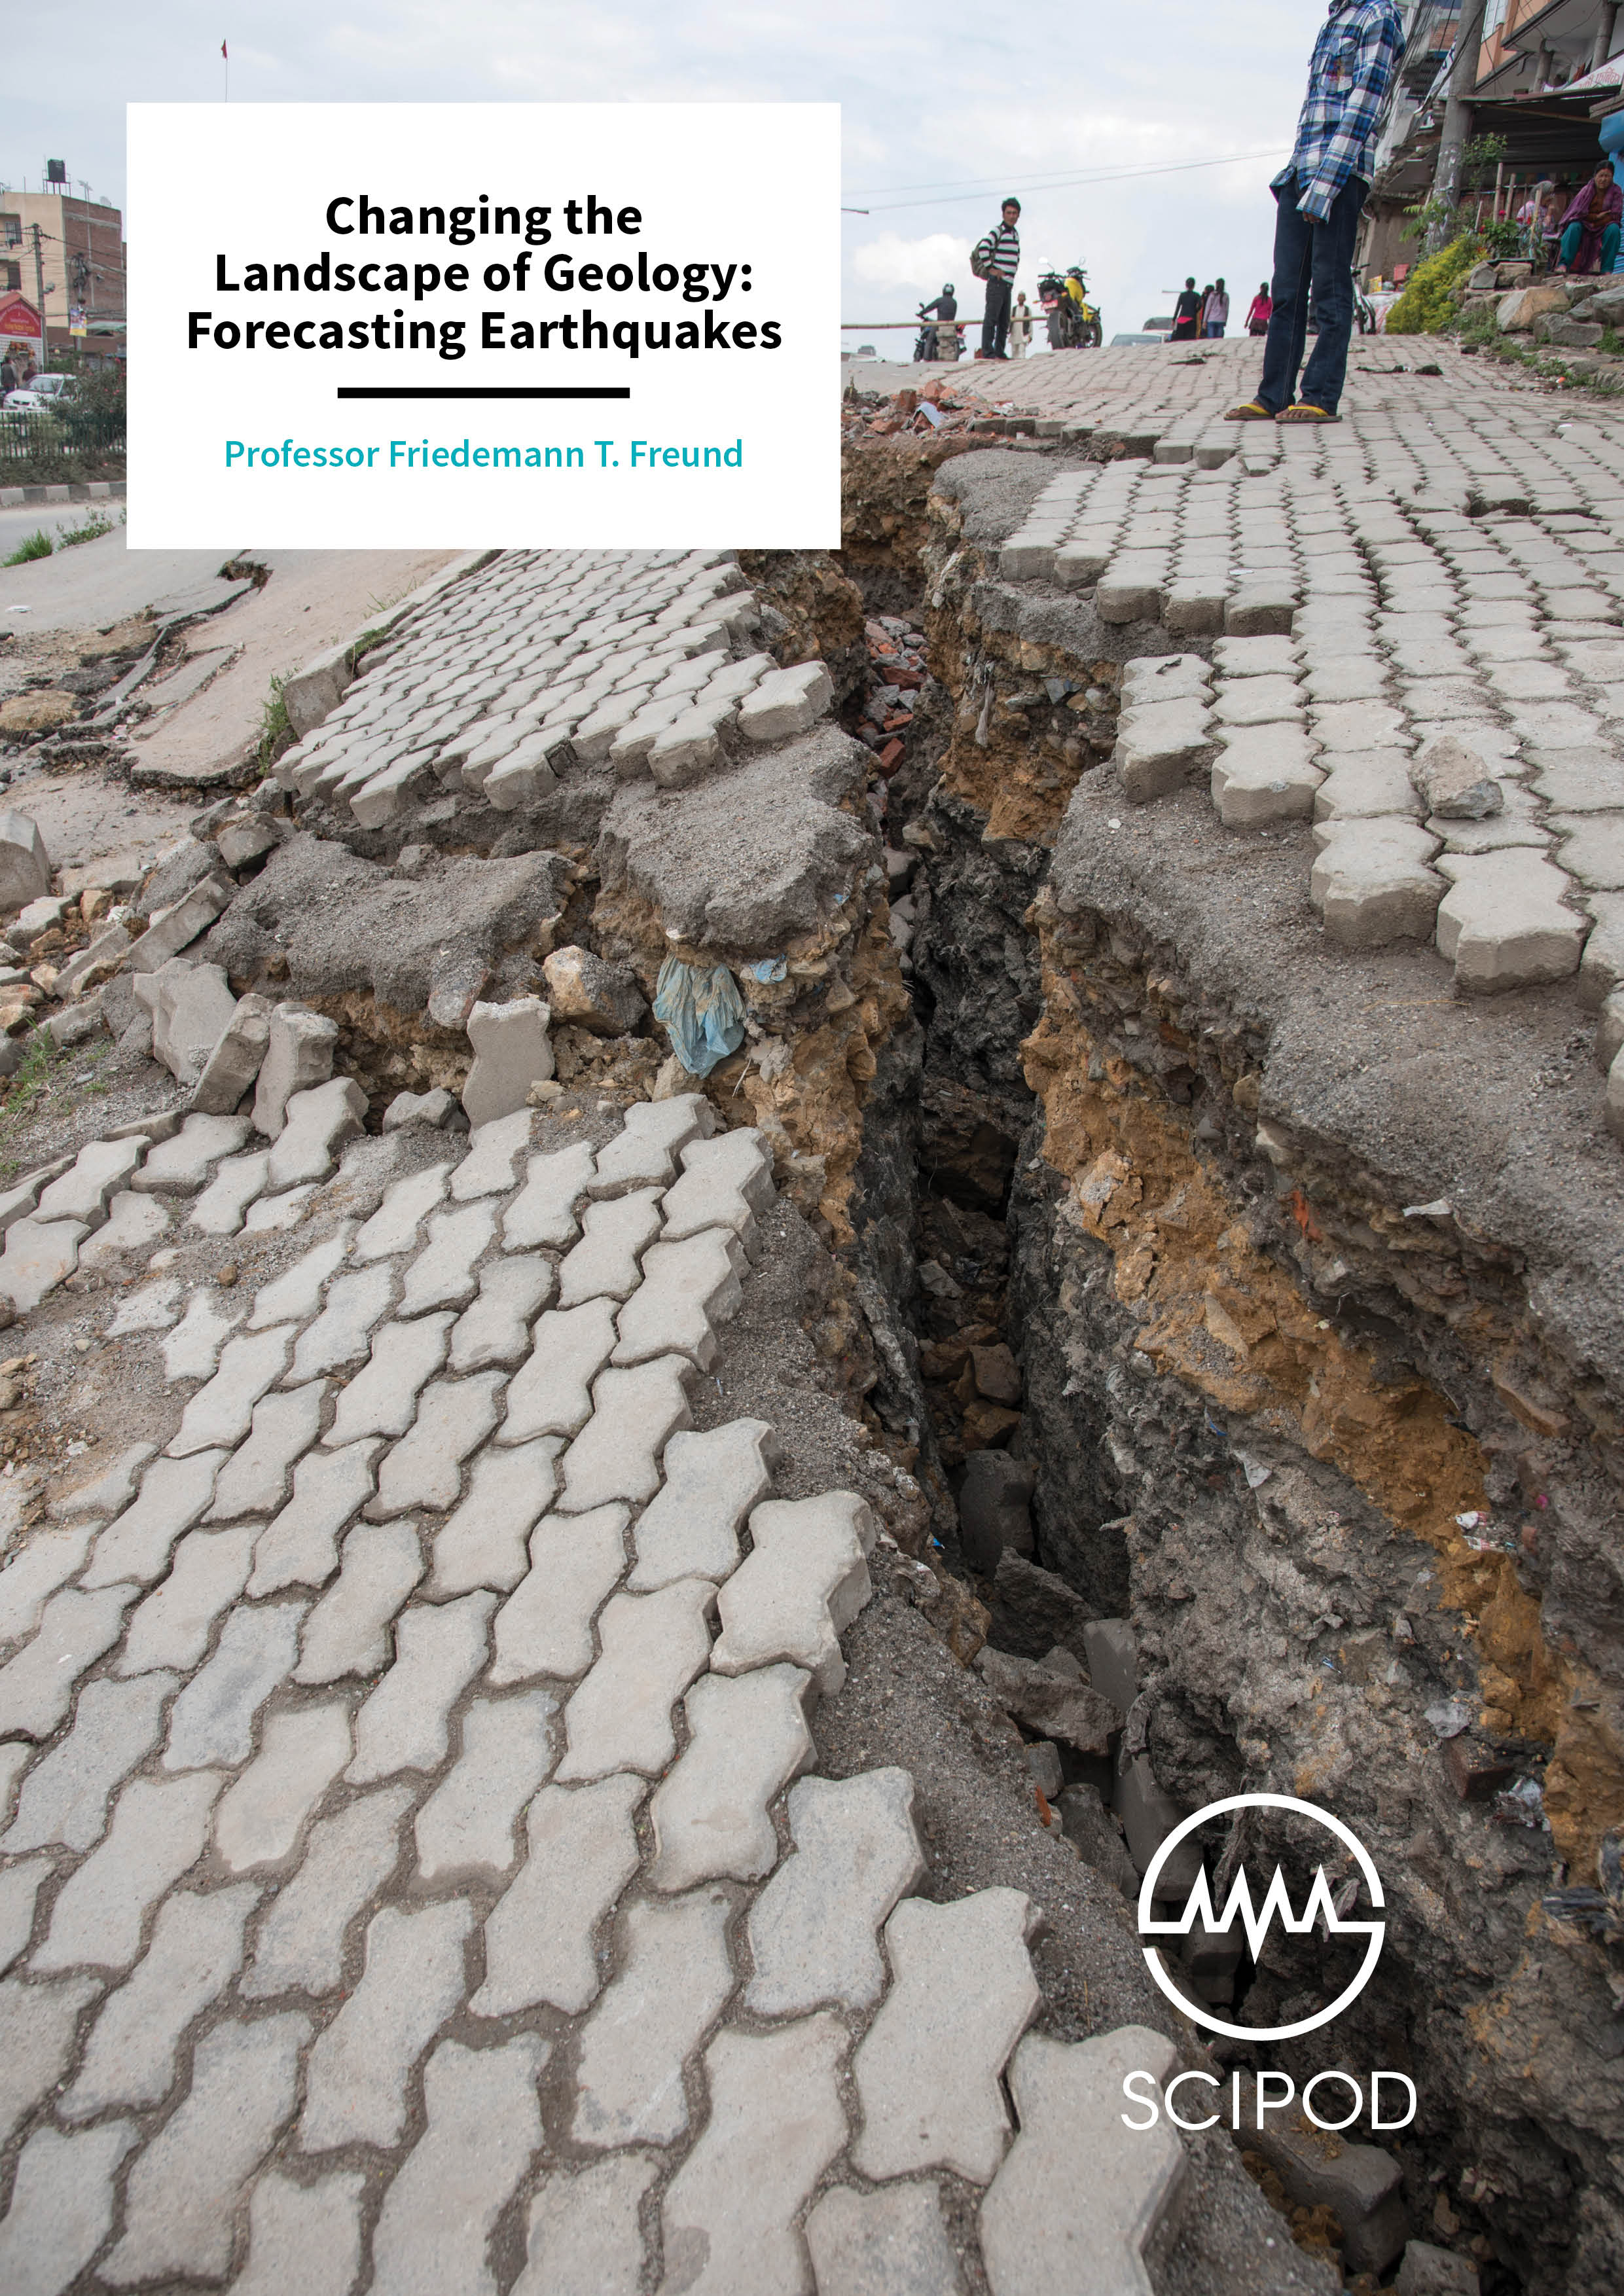 Changing the Landscape of Geology, Forecasting Earthquakes – Professor Friedemann T. Freund, NASA Ames Research Center